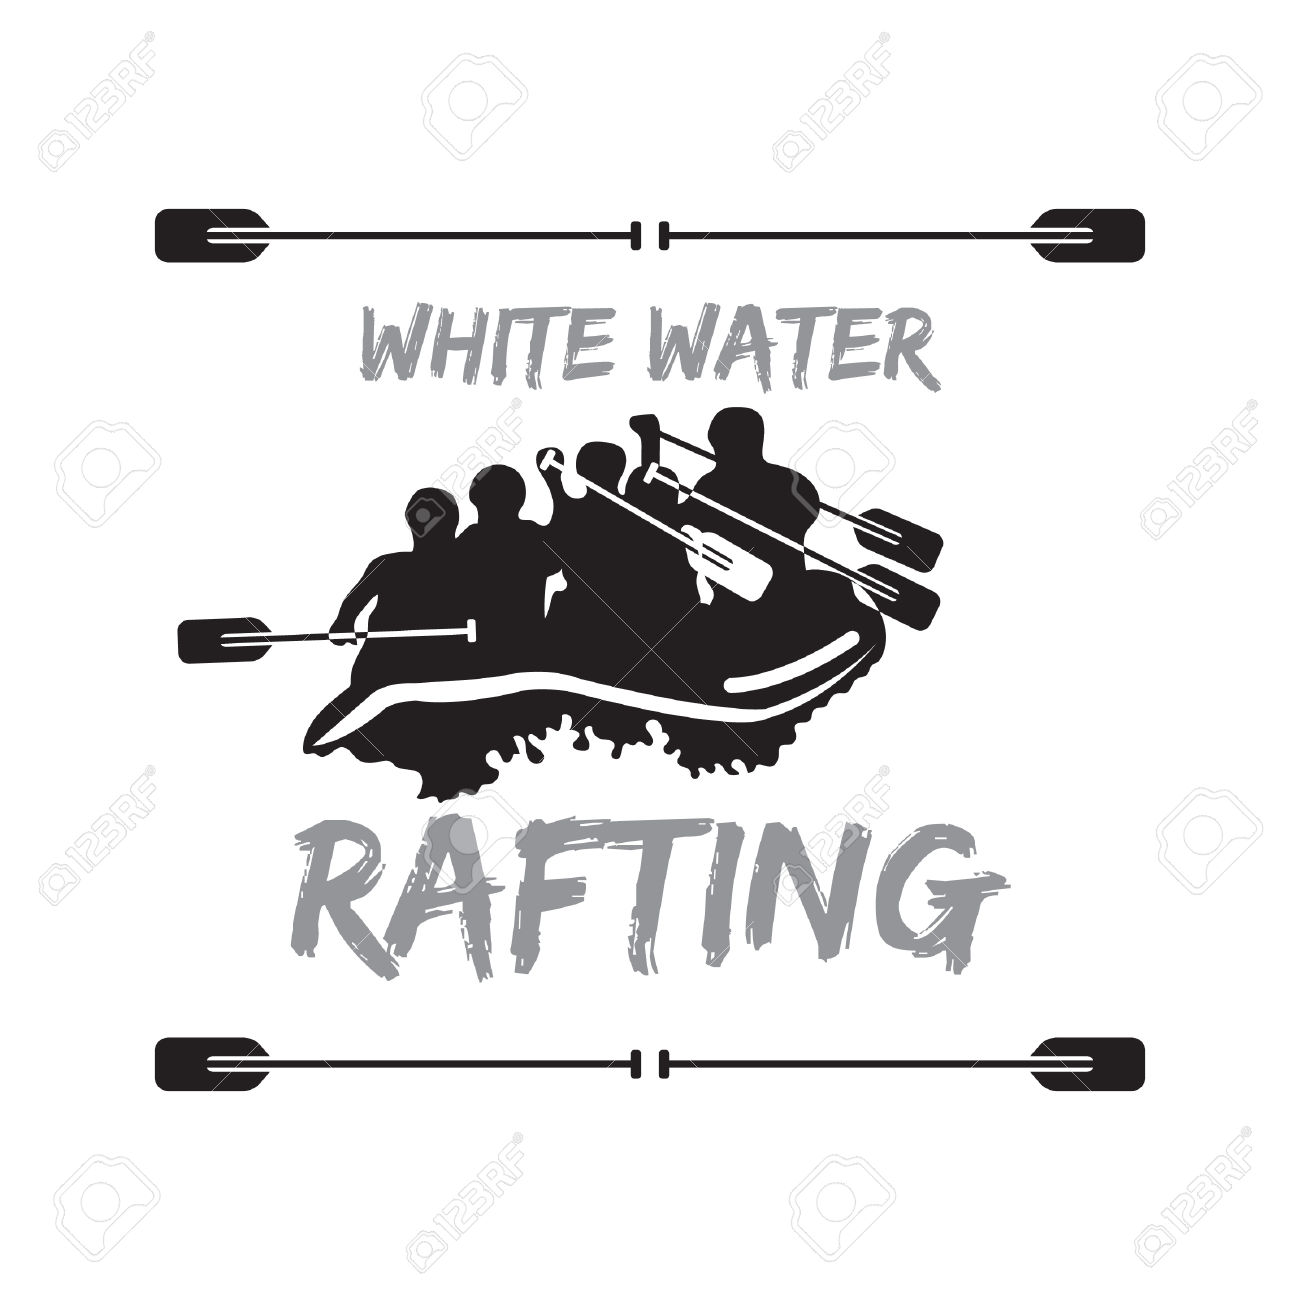 White water logo clipart - ClipartFest royalty free